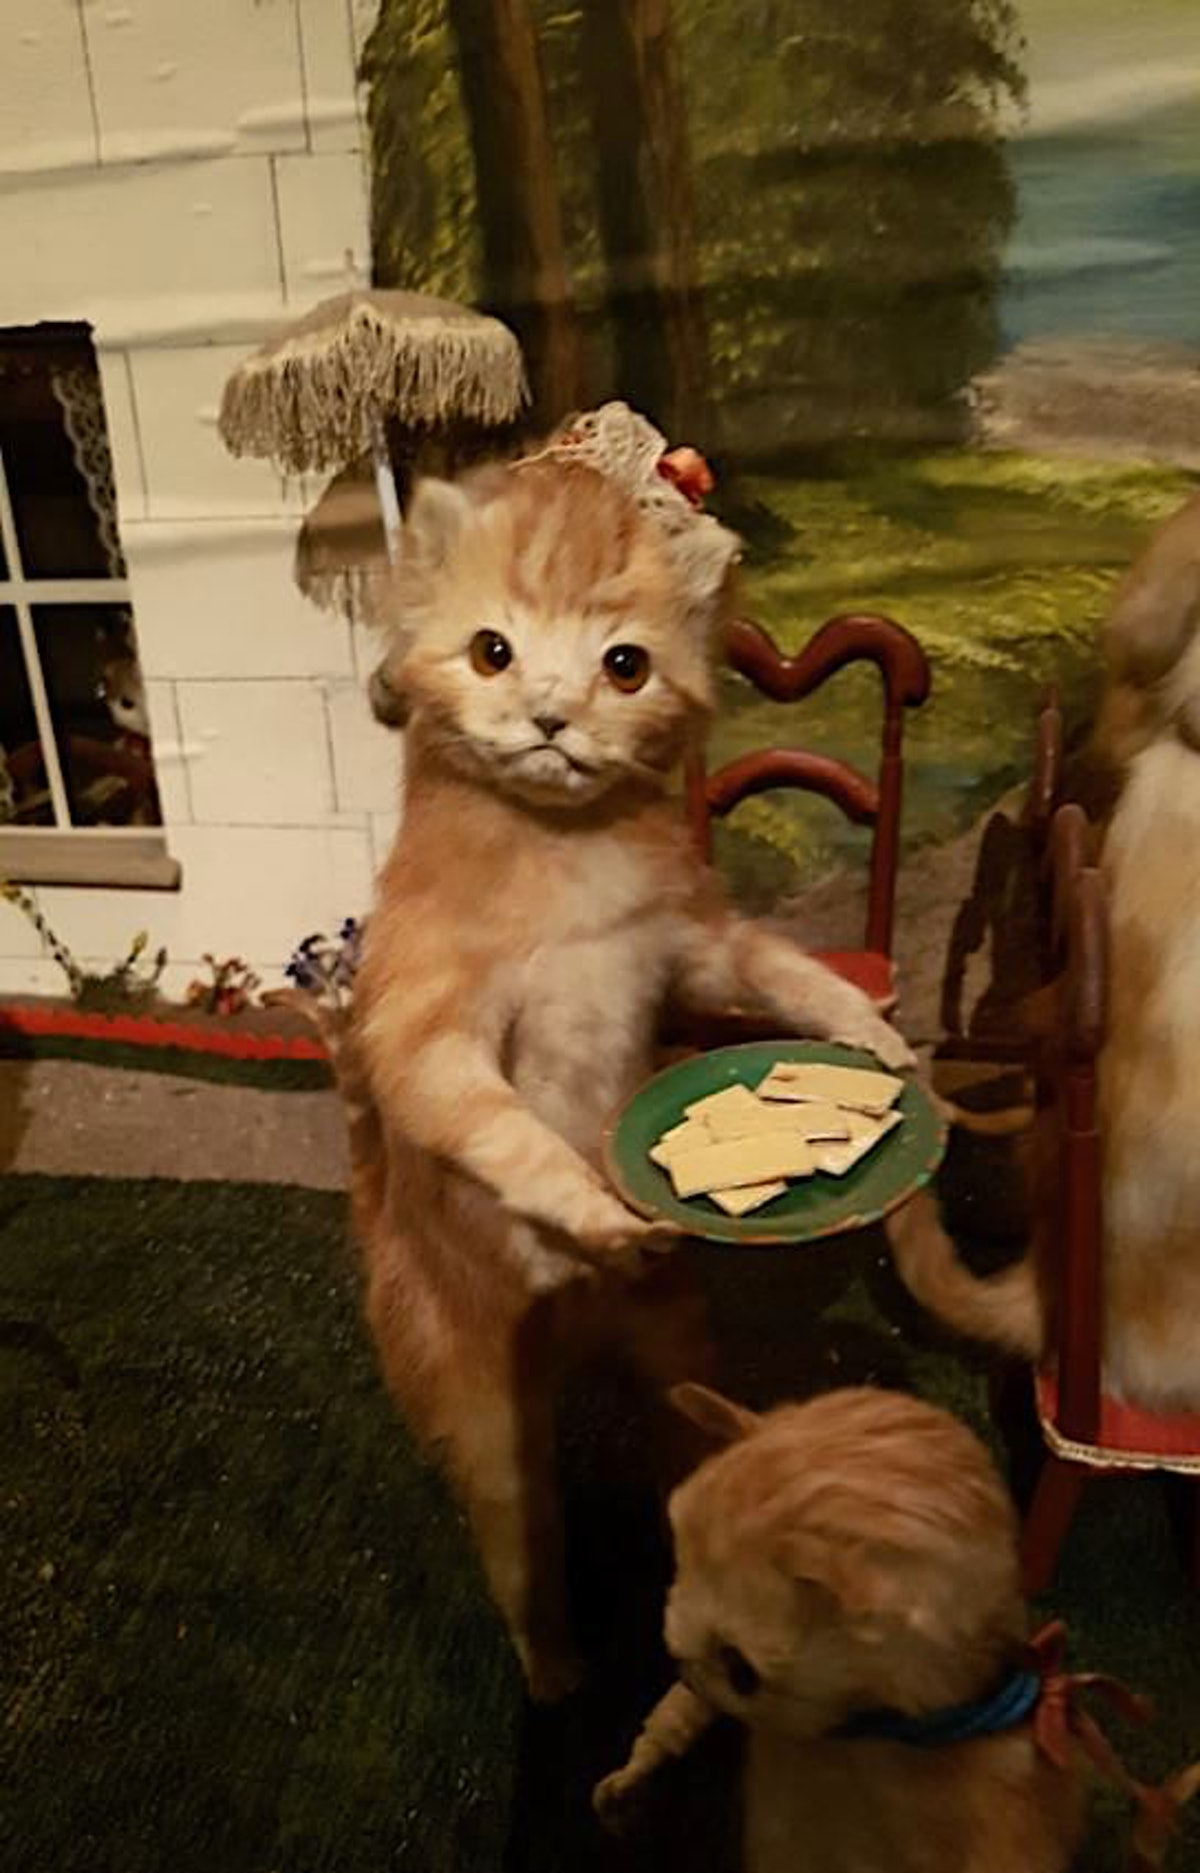 A taxidermical cat